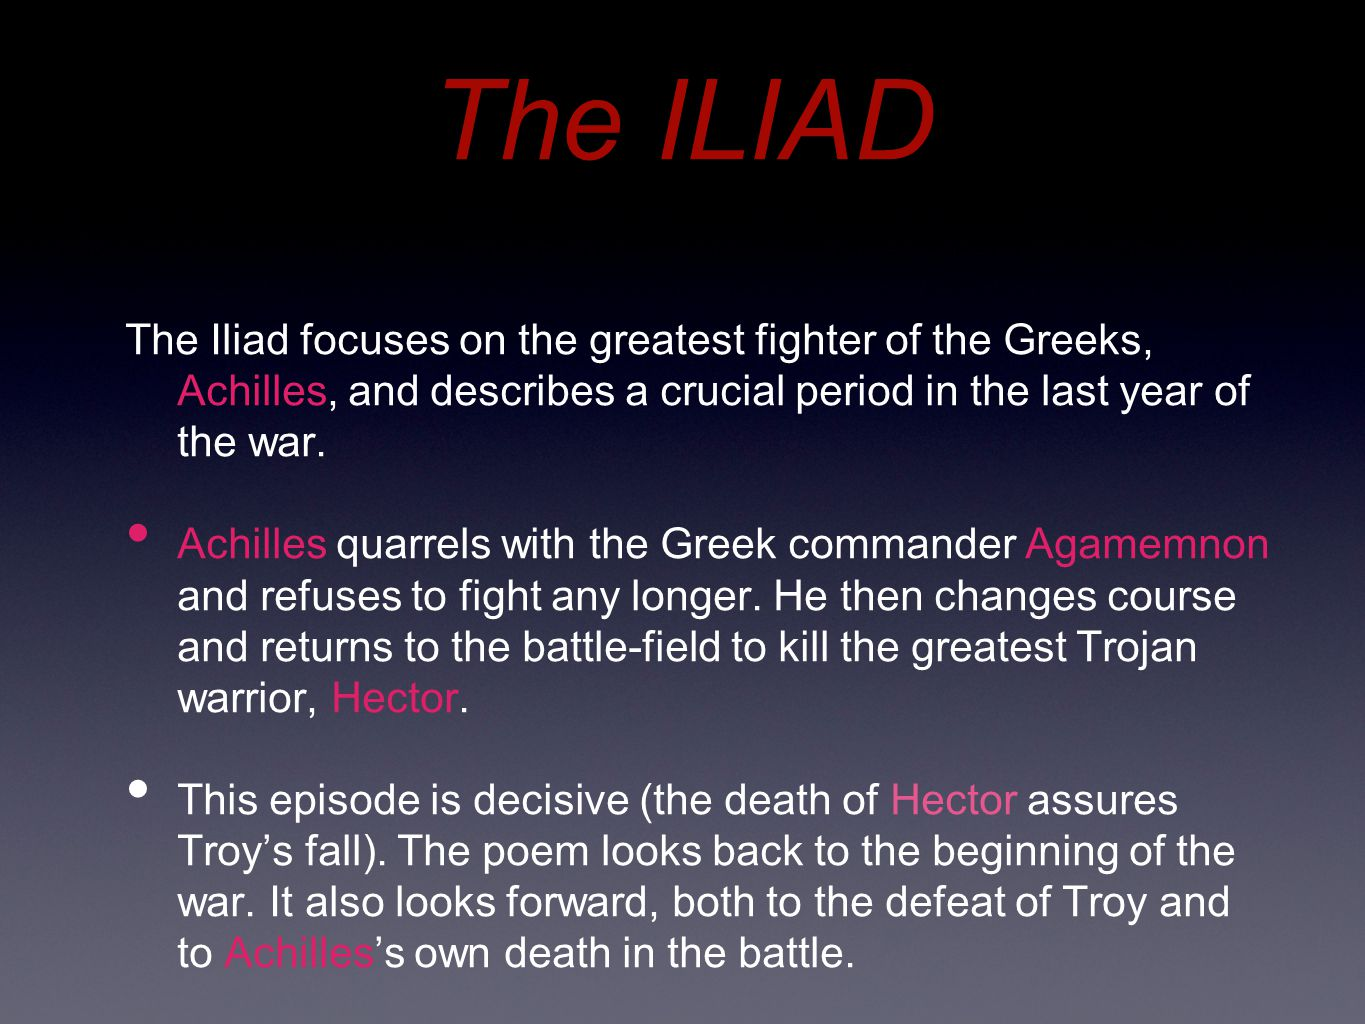 The ILIAD The Iliad focuses on the greatest fighter of the Greeks, Achilles, and describes a crucial period in the last year of the war.